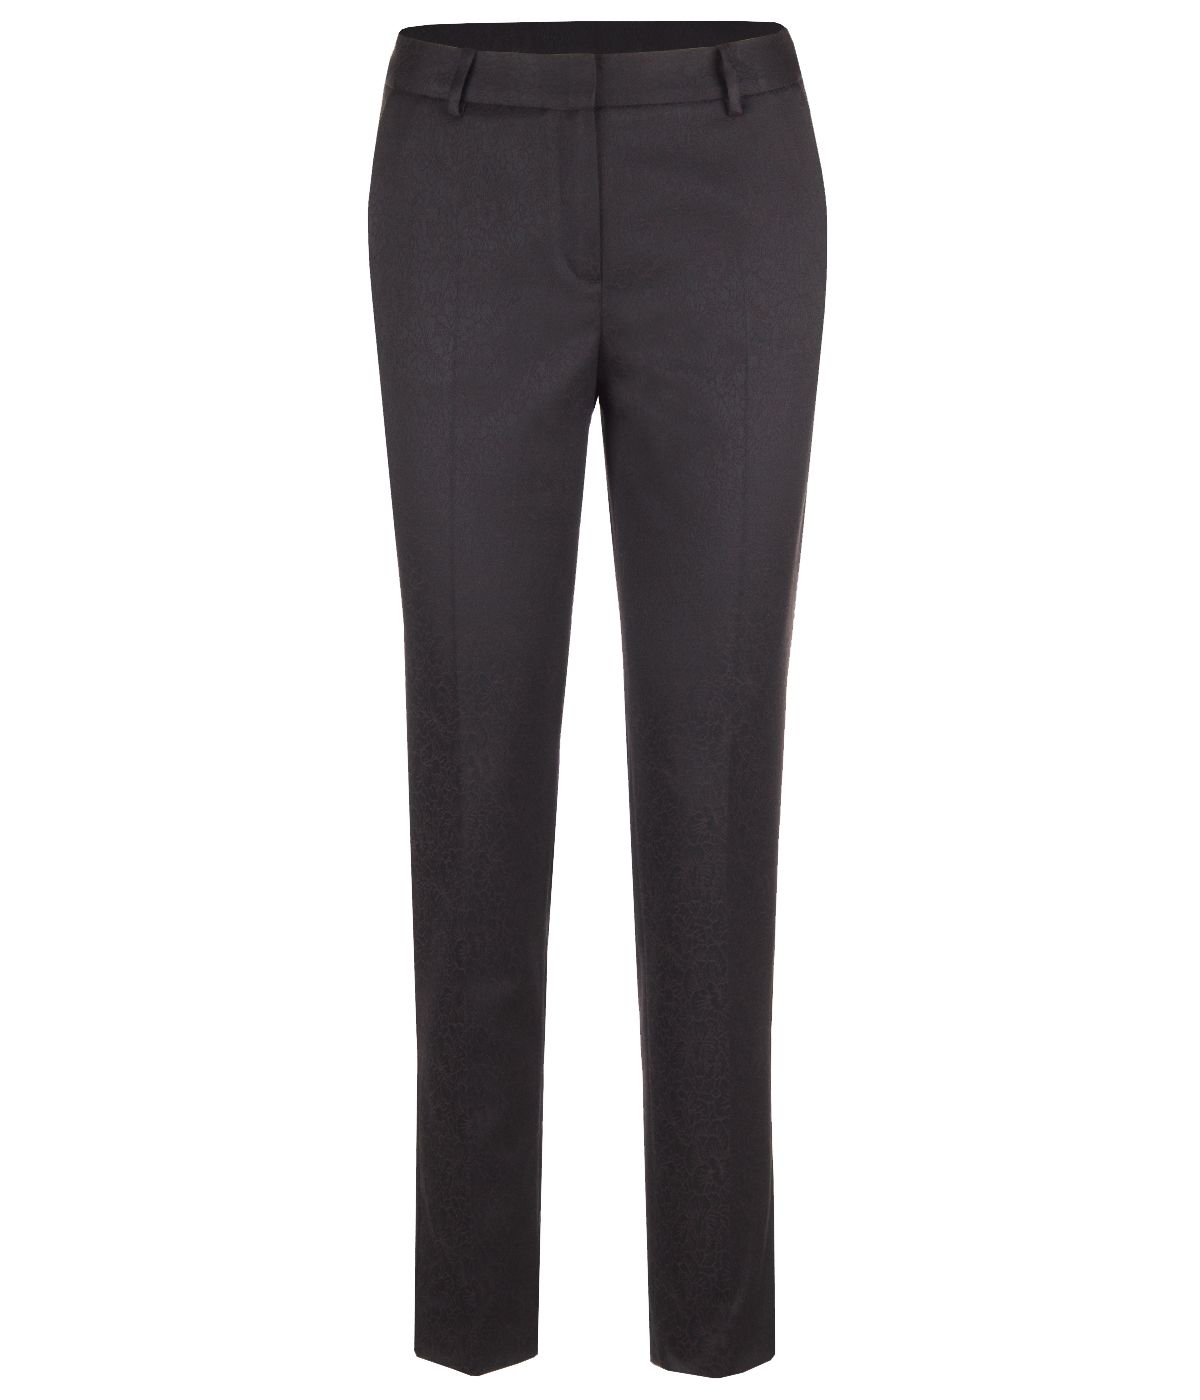 CLASSIC BLACK TROUSERS 0